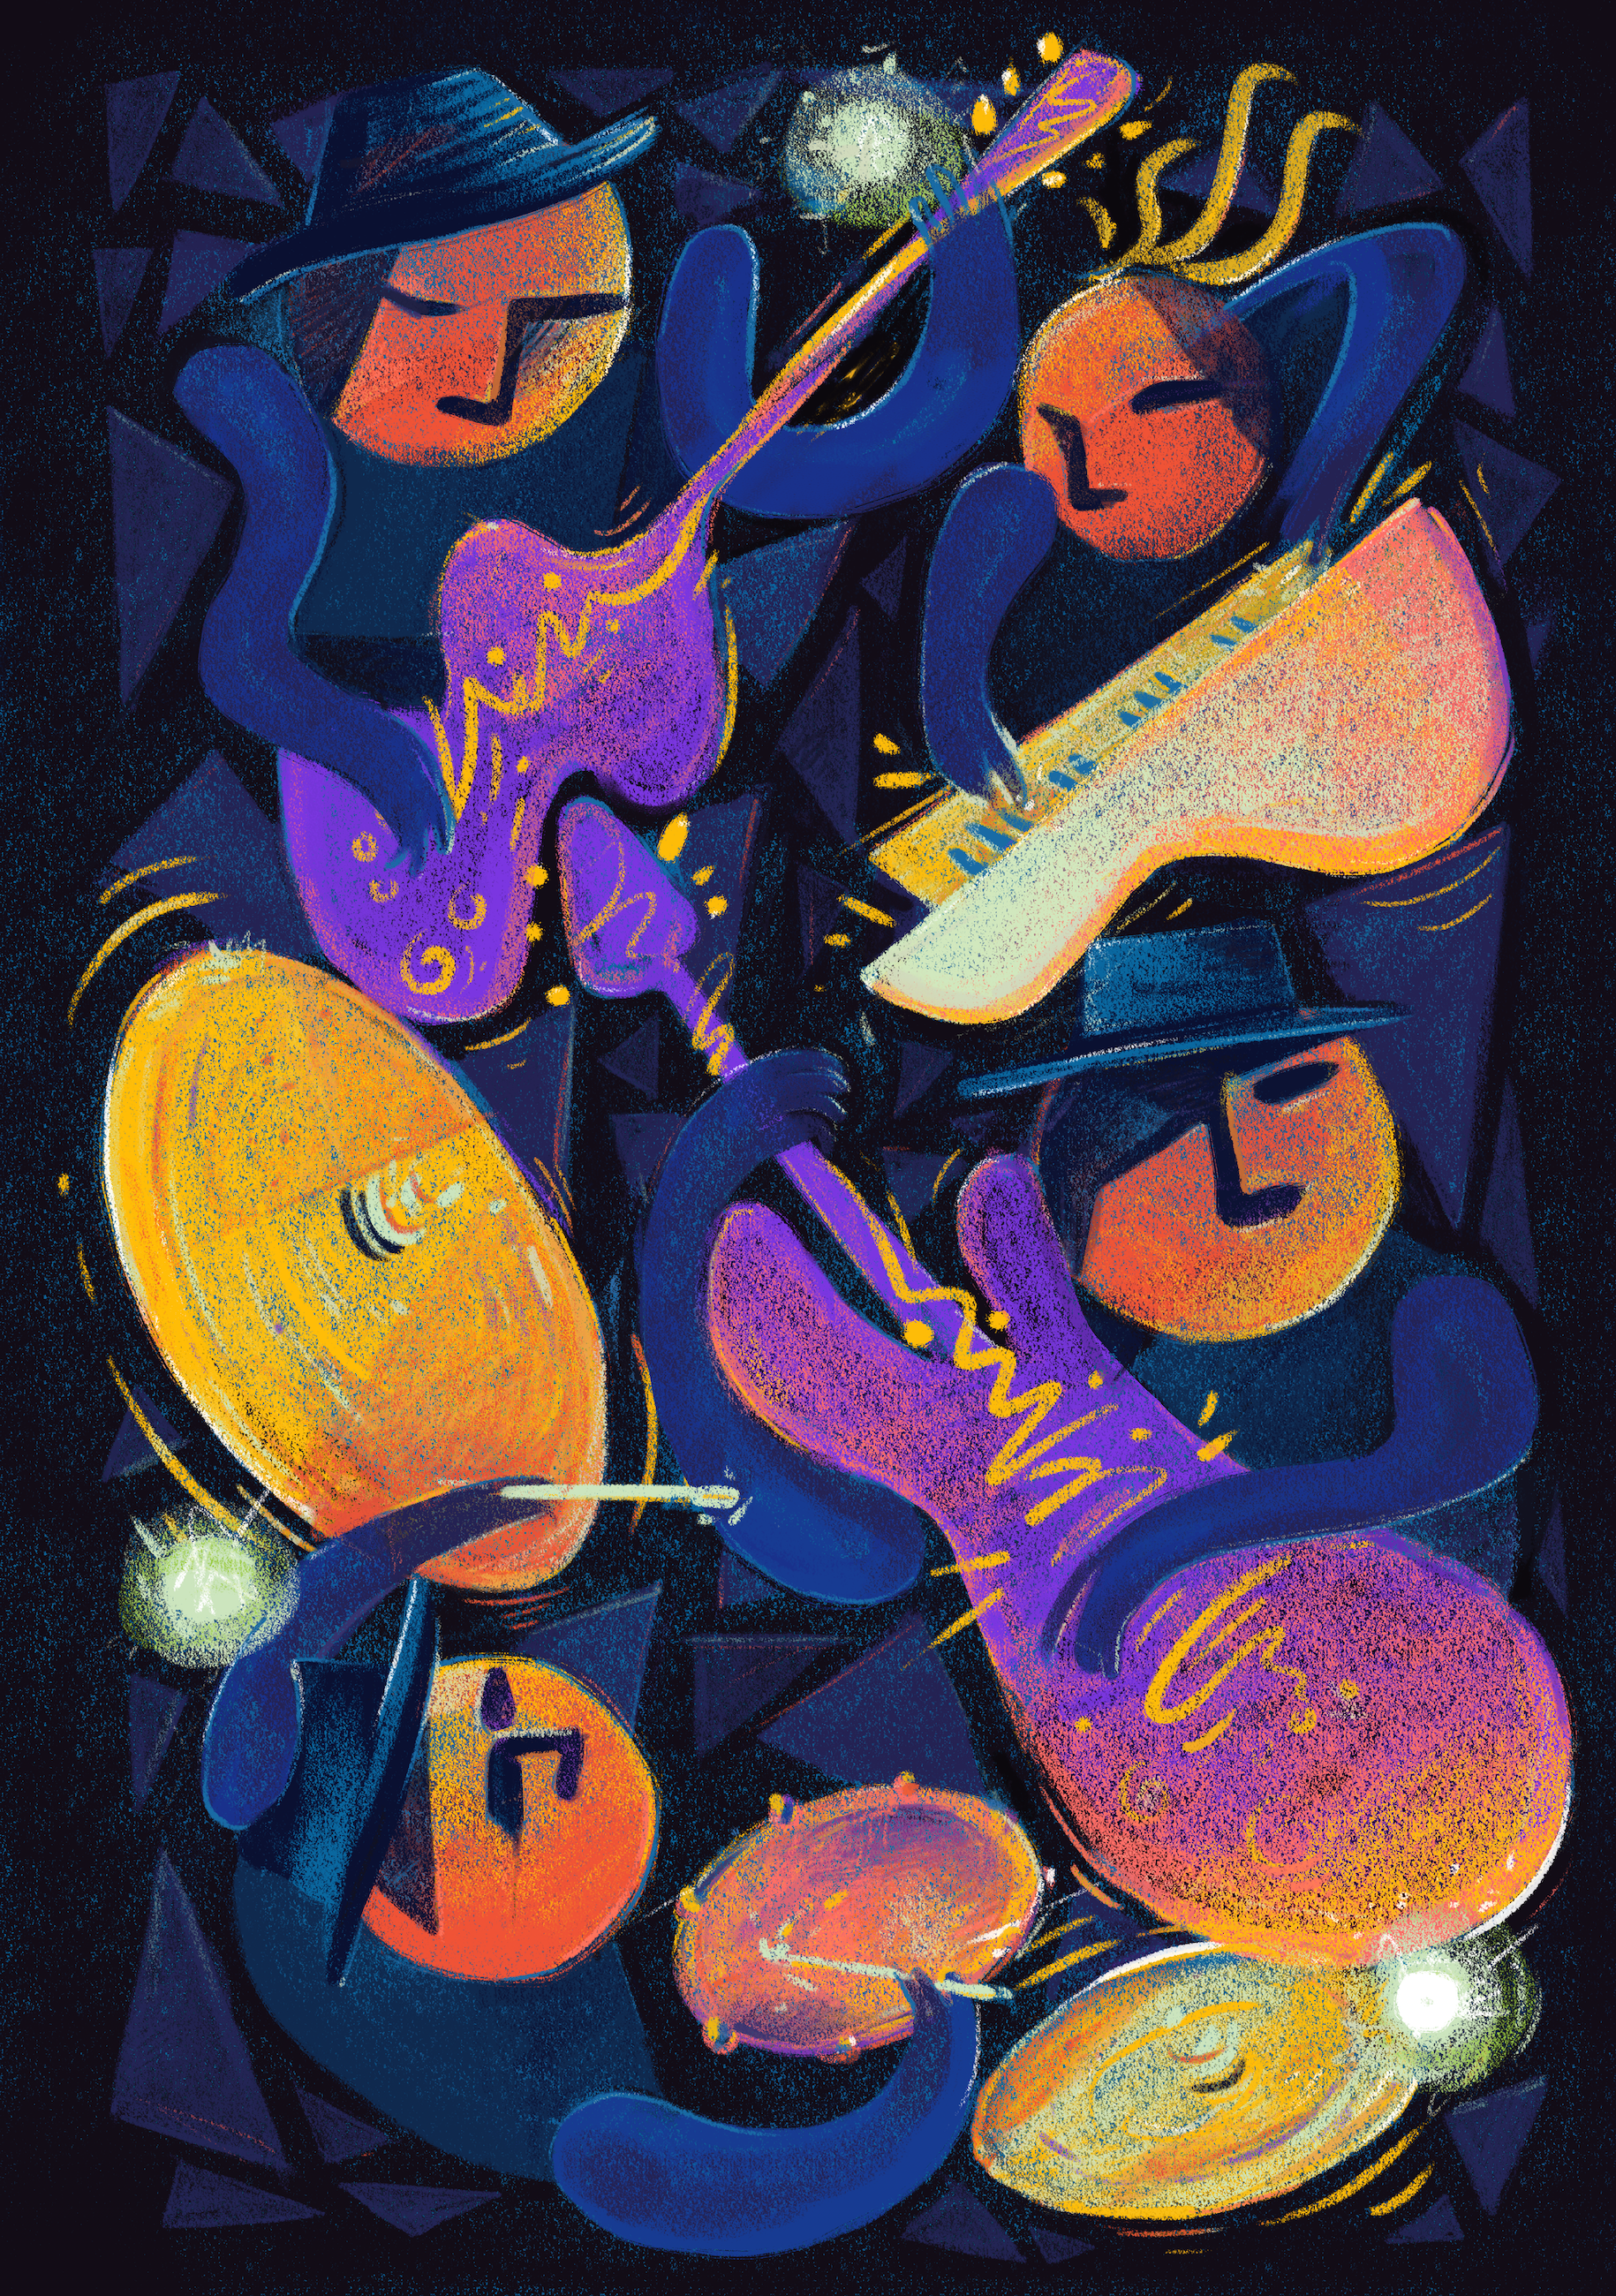 2017 Western Maryland Blues Fest - Winning submission for the 2017 Western Maryland Blues Fest call to artists.The poster design defined the fest's branding for the year, and was featured on merchandise, advertising, and all print and digital materials.←back